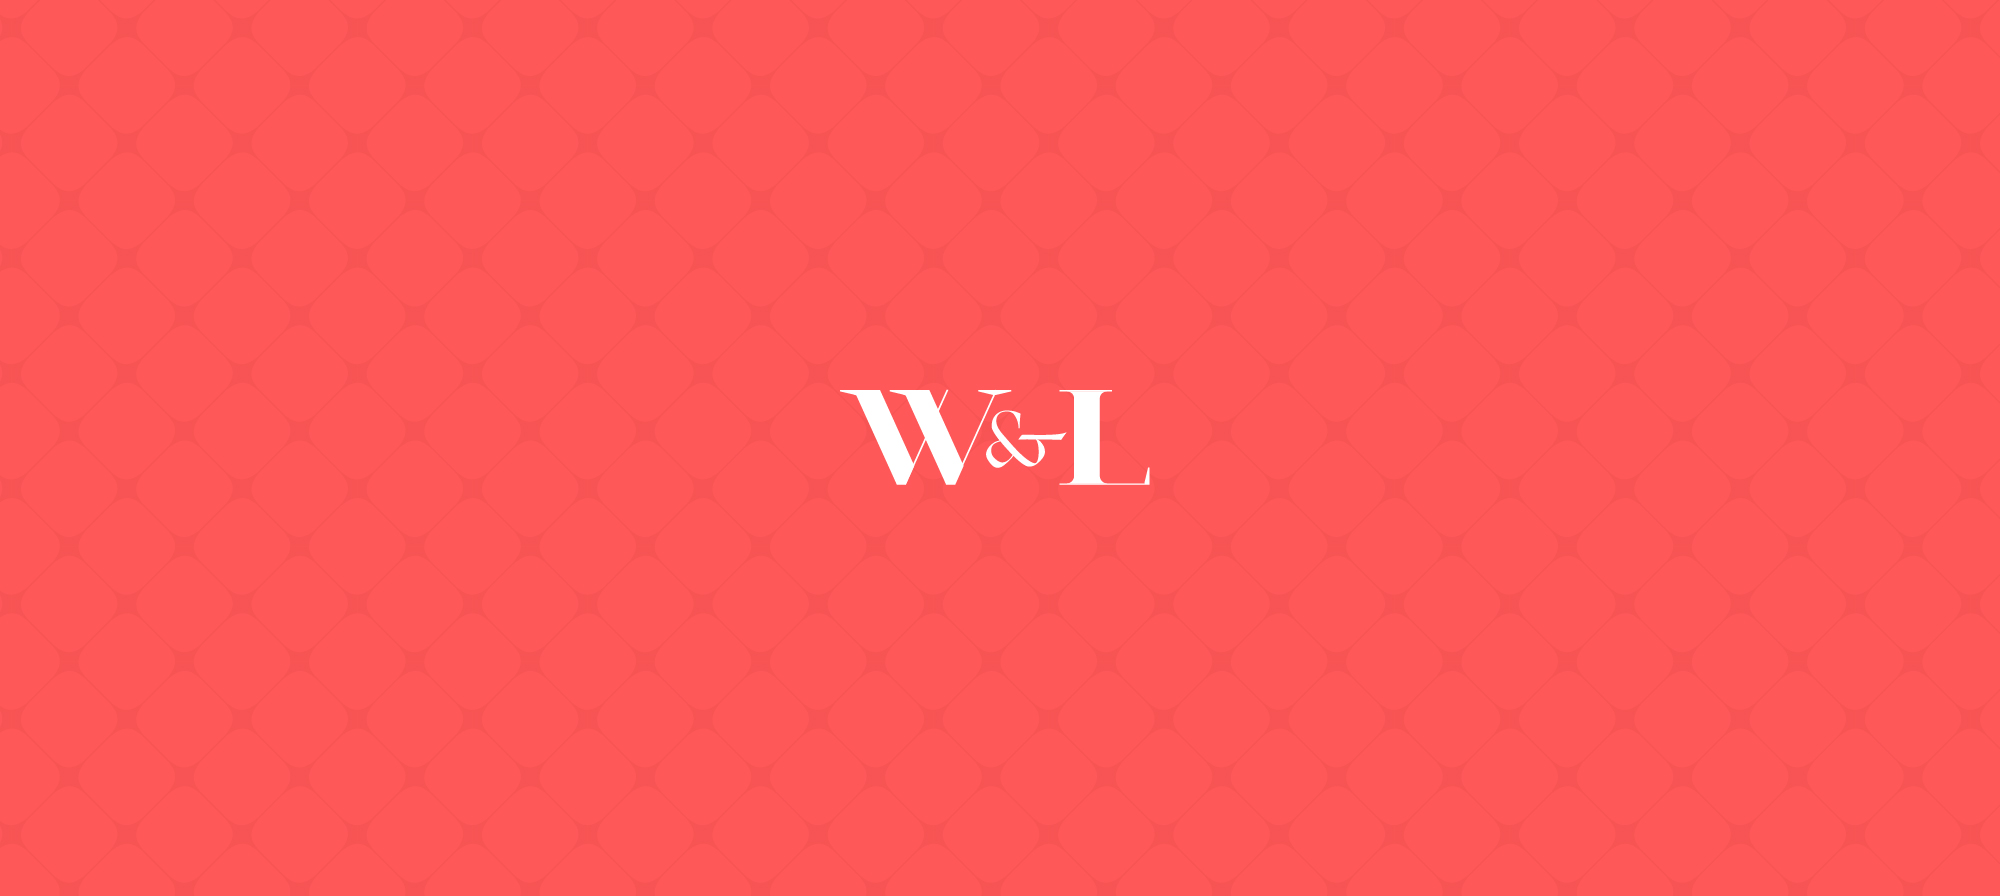 all_logo_behance_151021-23